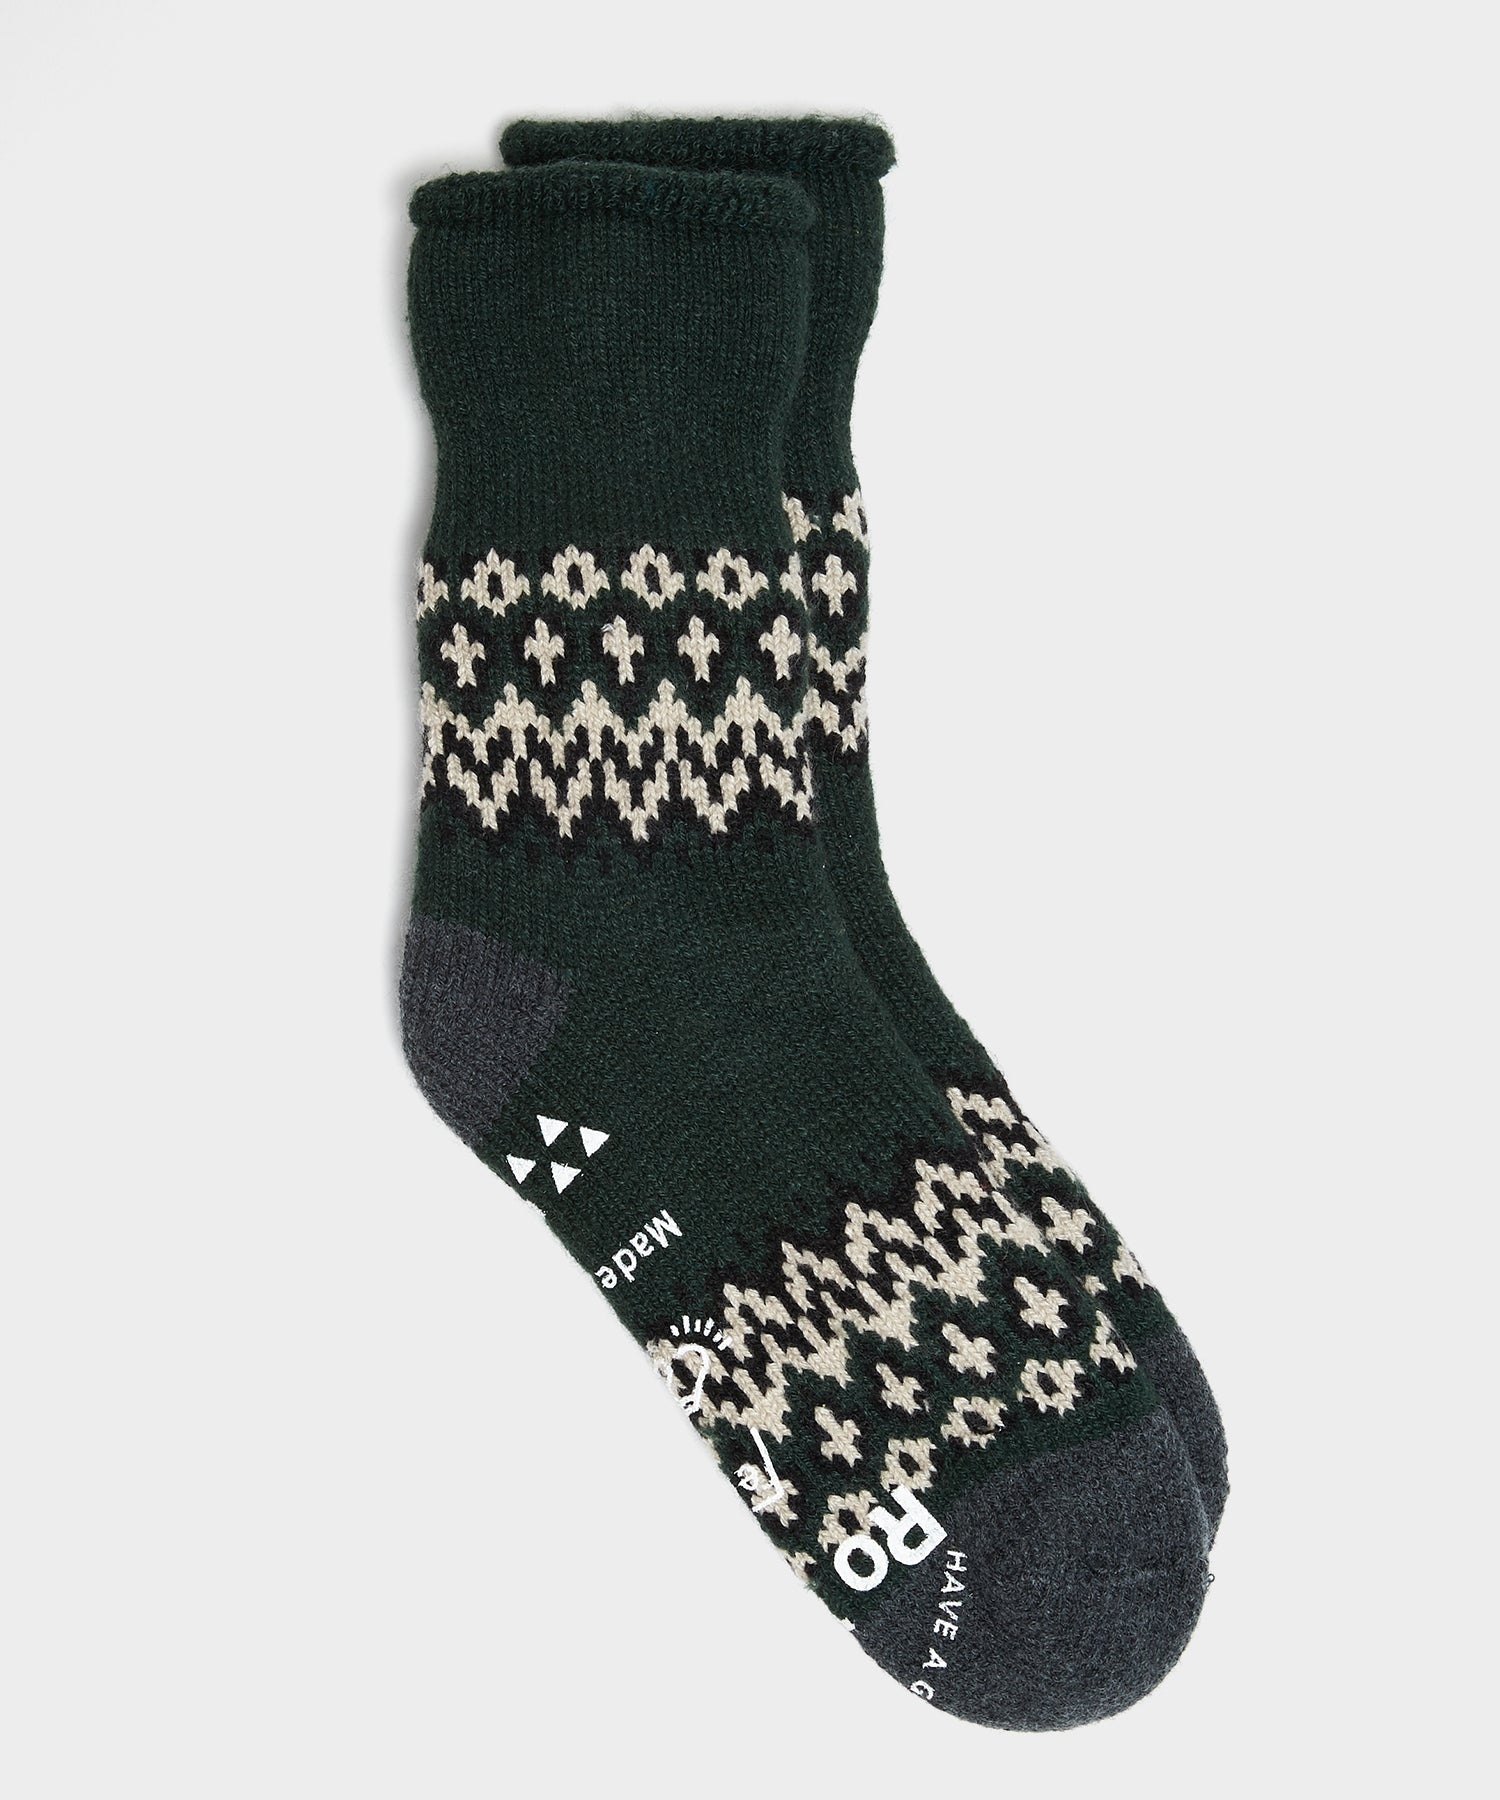 RoToTo Comfy Nordic Room Socks in Dark Green